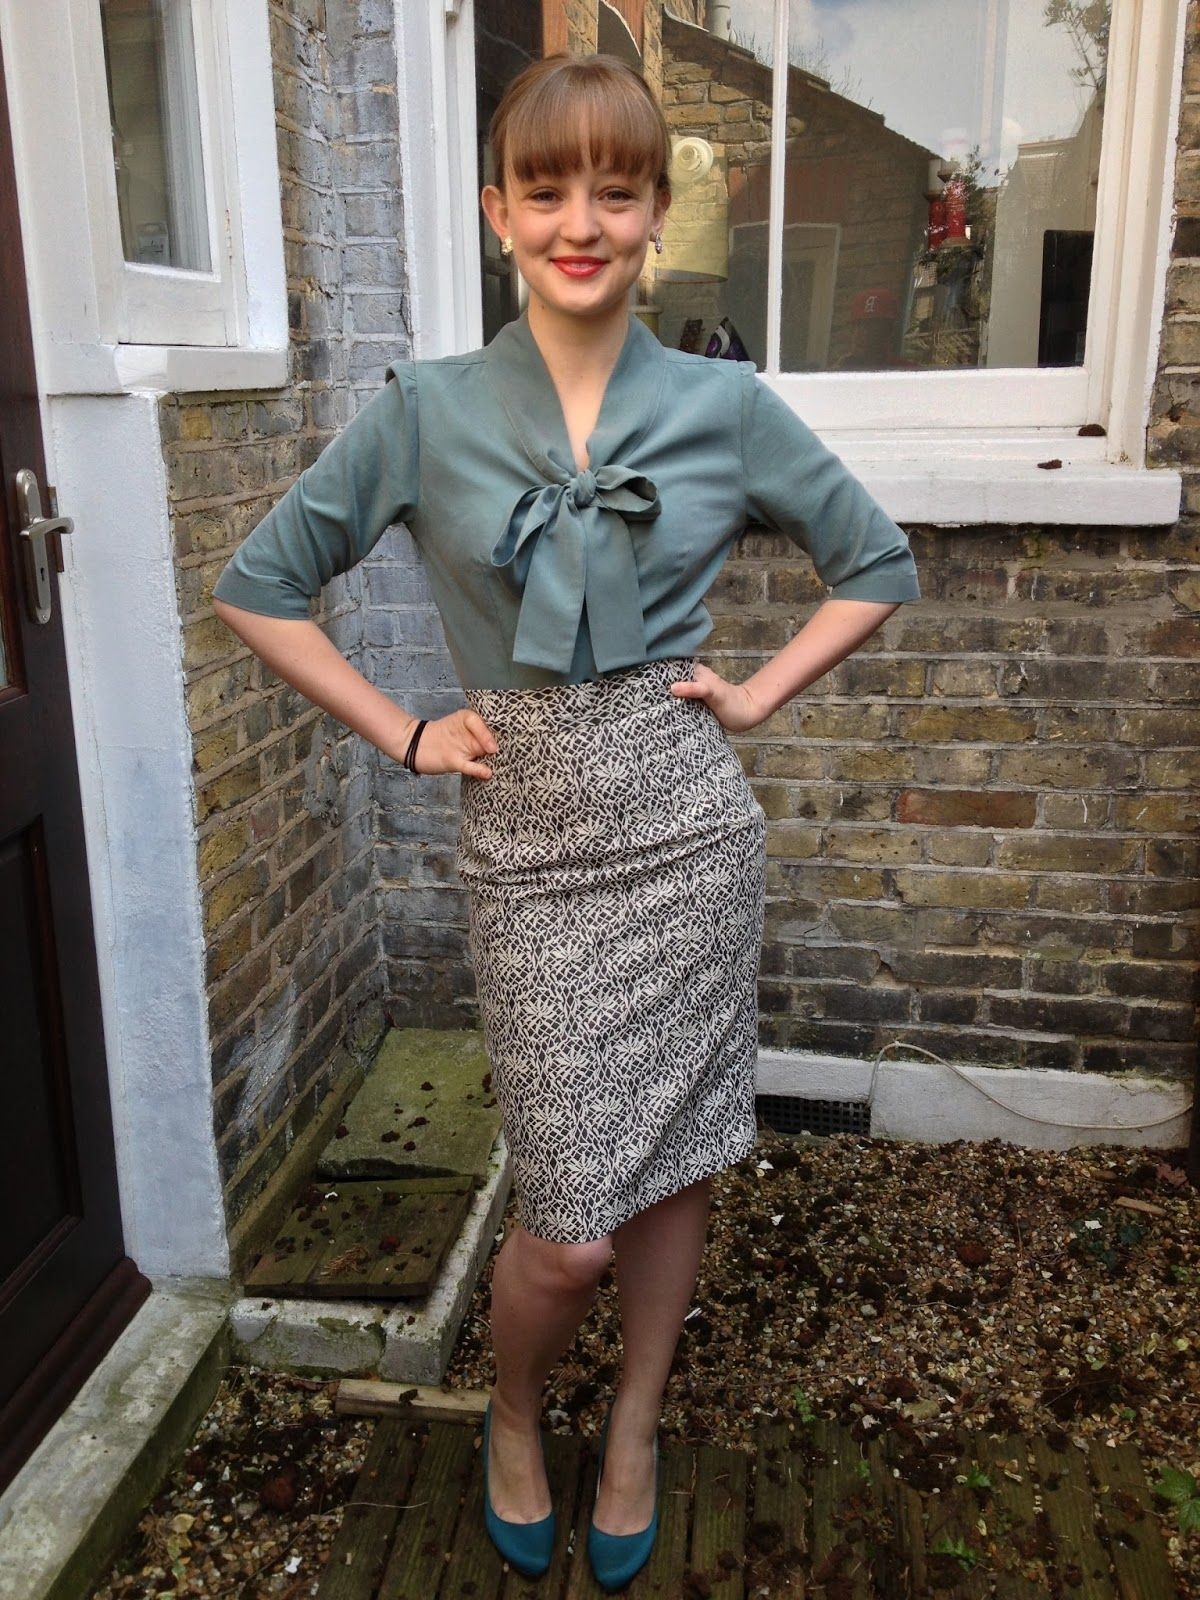 charlotte skirt by hand london - Google Search | Sewing projects ...